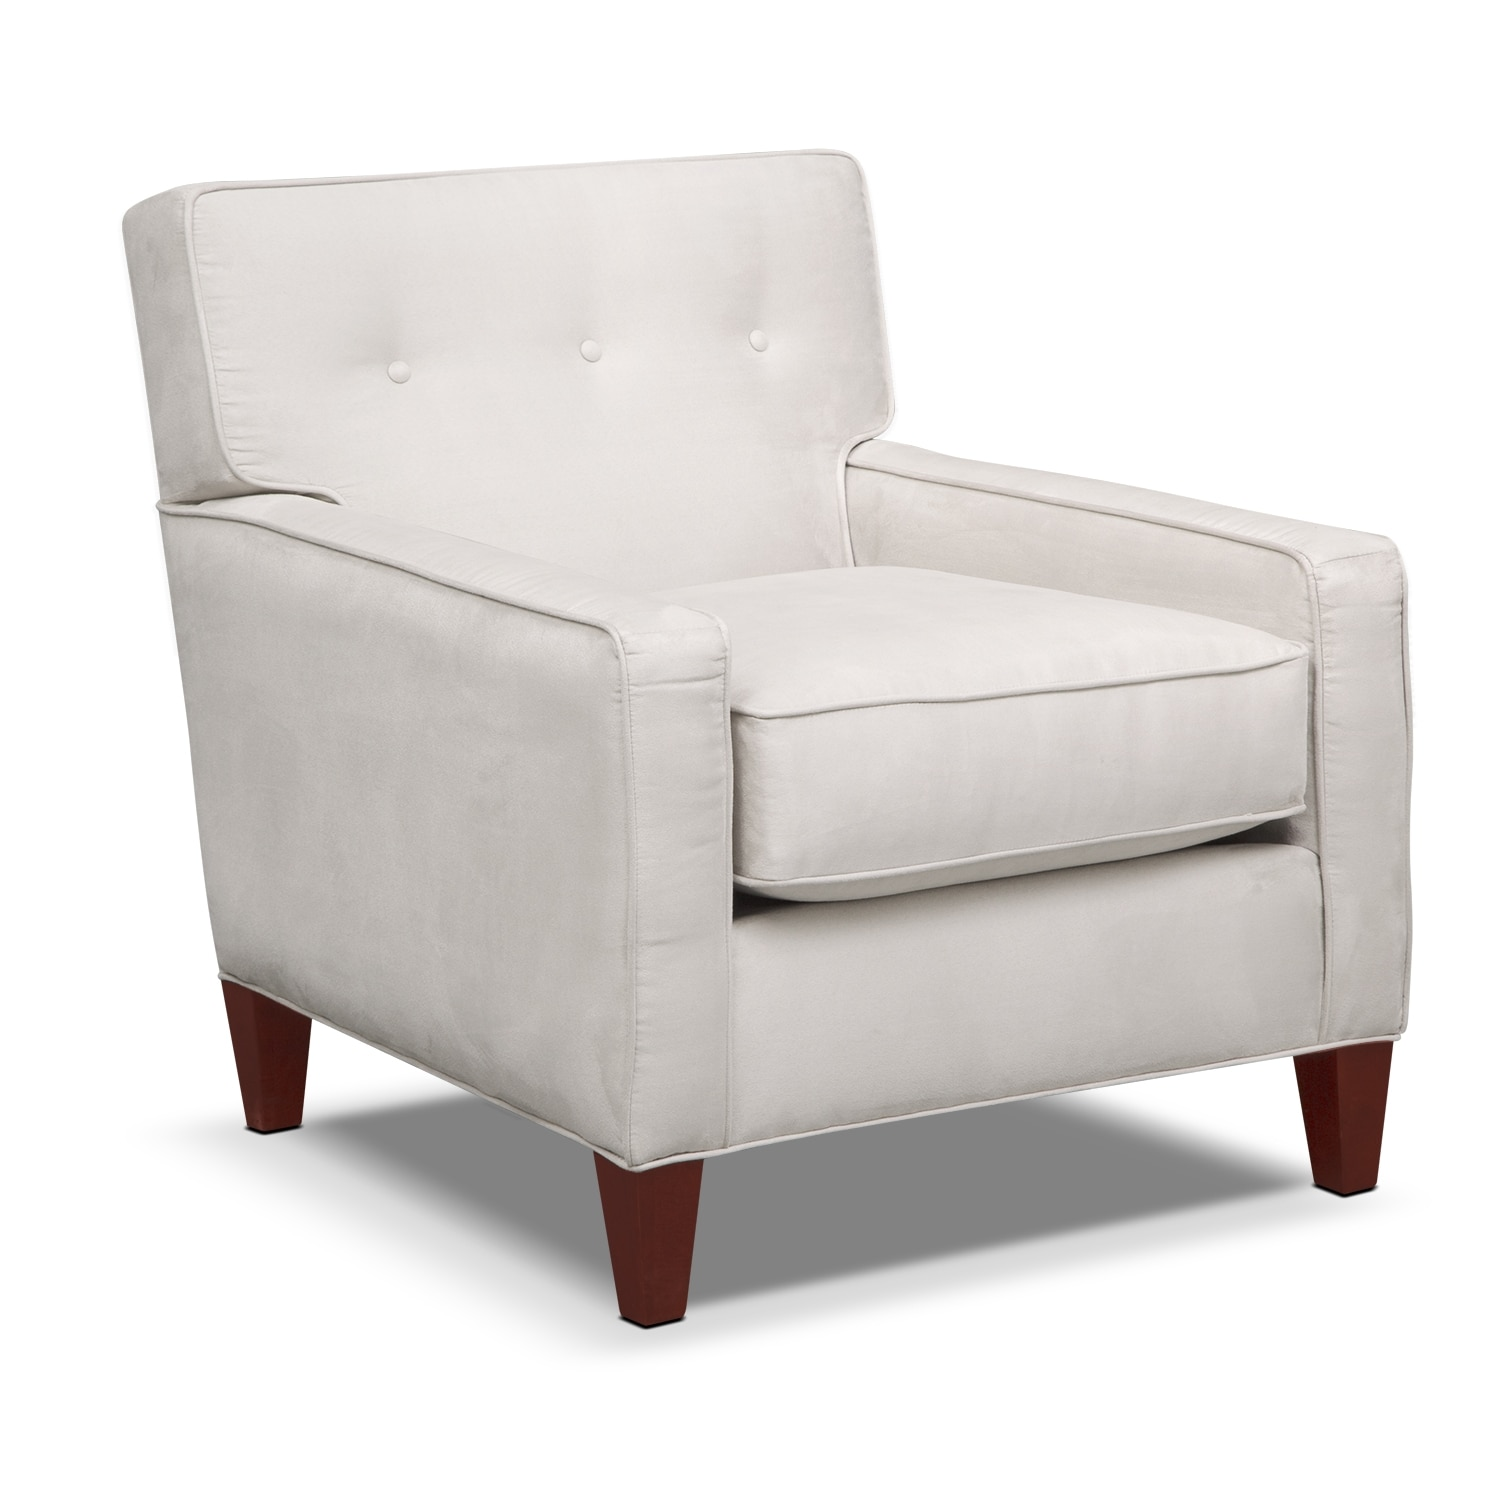 Living Room Furniture - Soho Chair - Cement